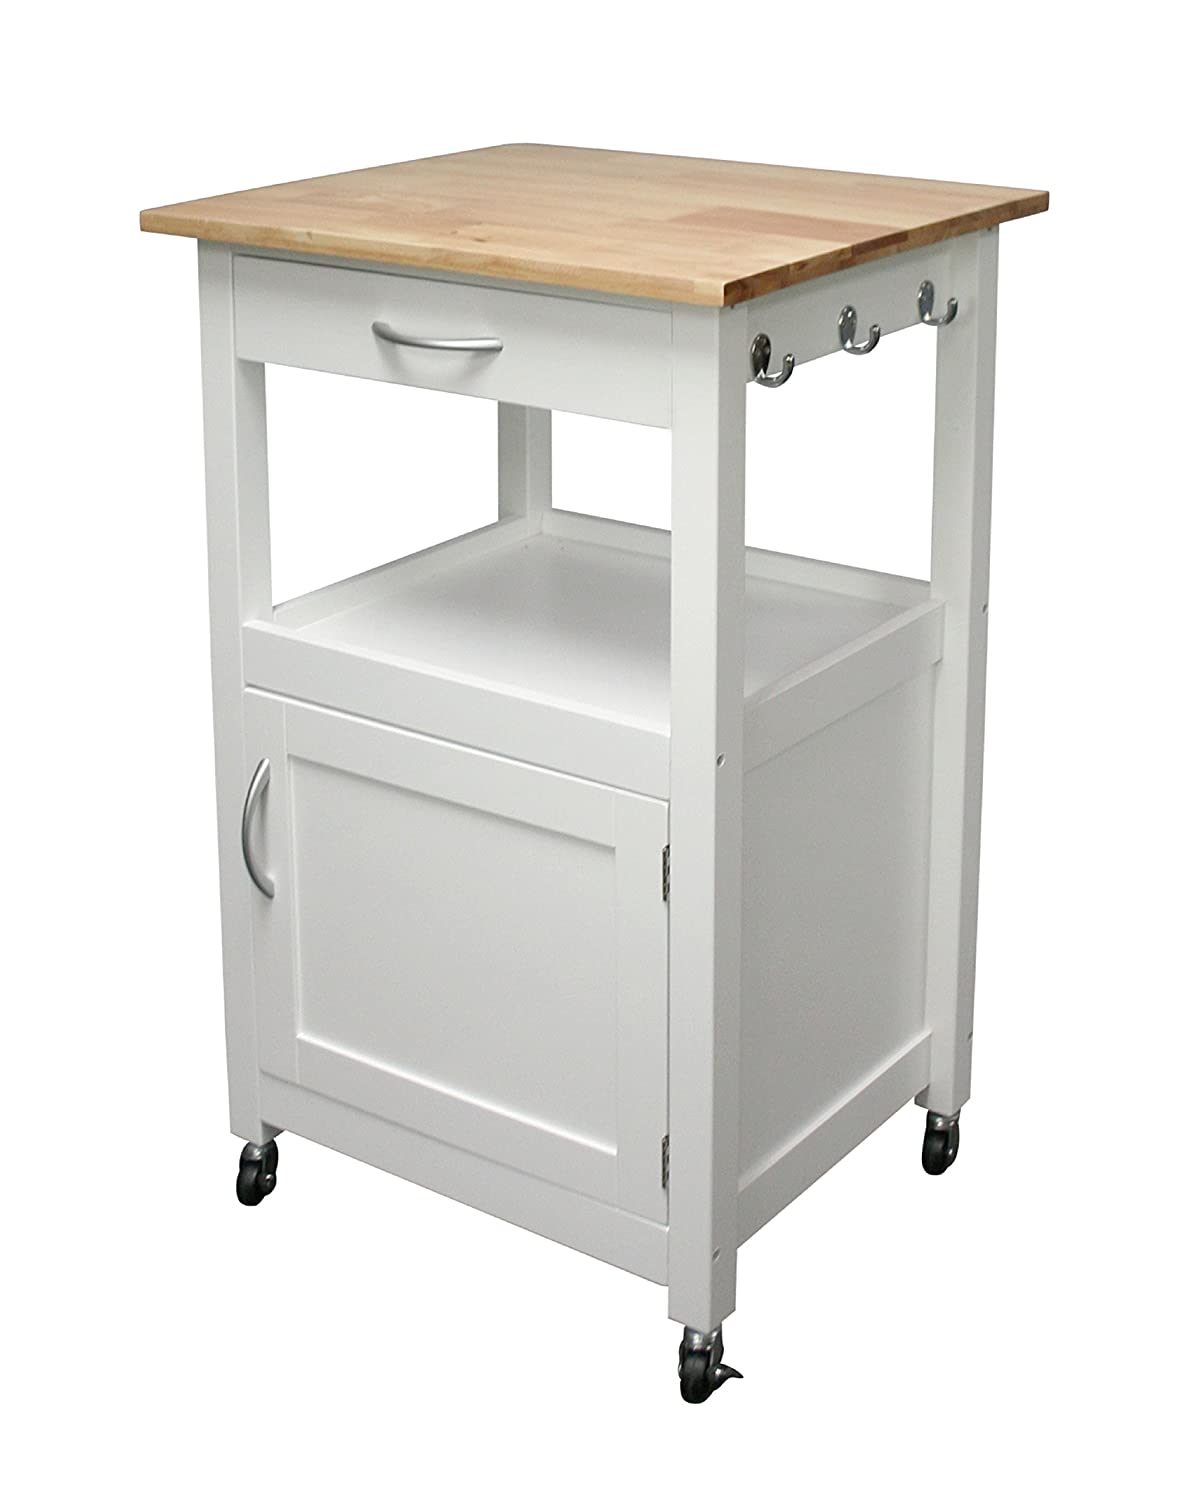 amazon com ehemco kitchen island cart natural wood top with amazon com ehemco kitchen island cart natural wood top with white base white kitchen islands carts